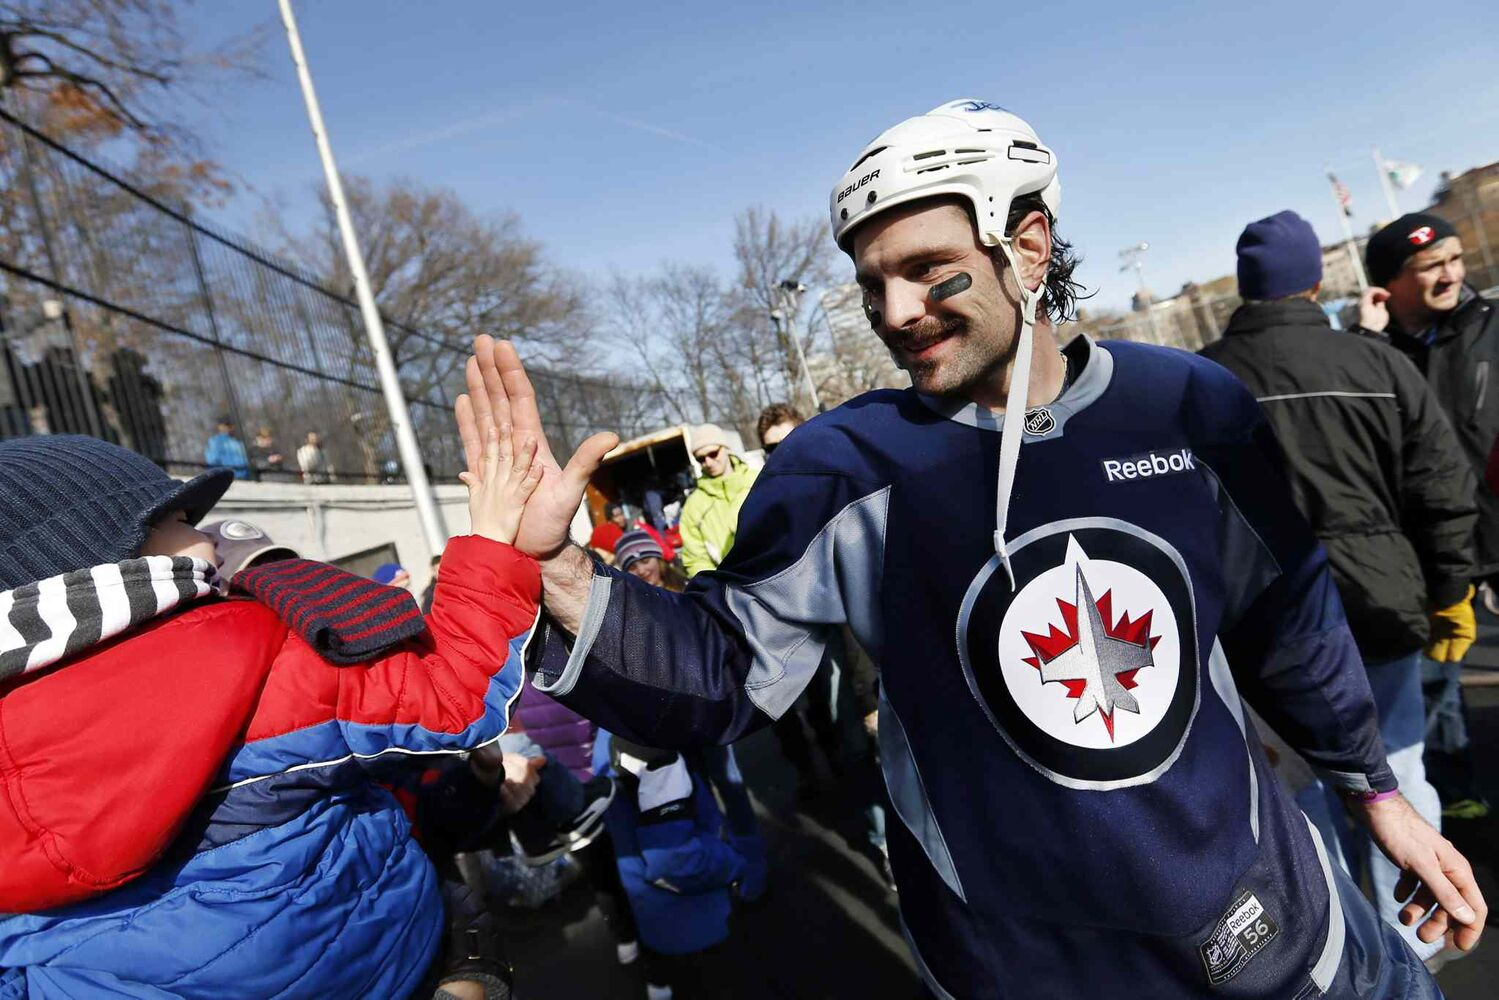 Winnipeg Jets defenceman Mark Stuart high-fives four-year-old fan James MacDonald after practice. (Jason DeCrow / The Associated Press)